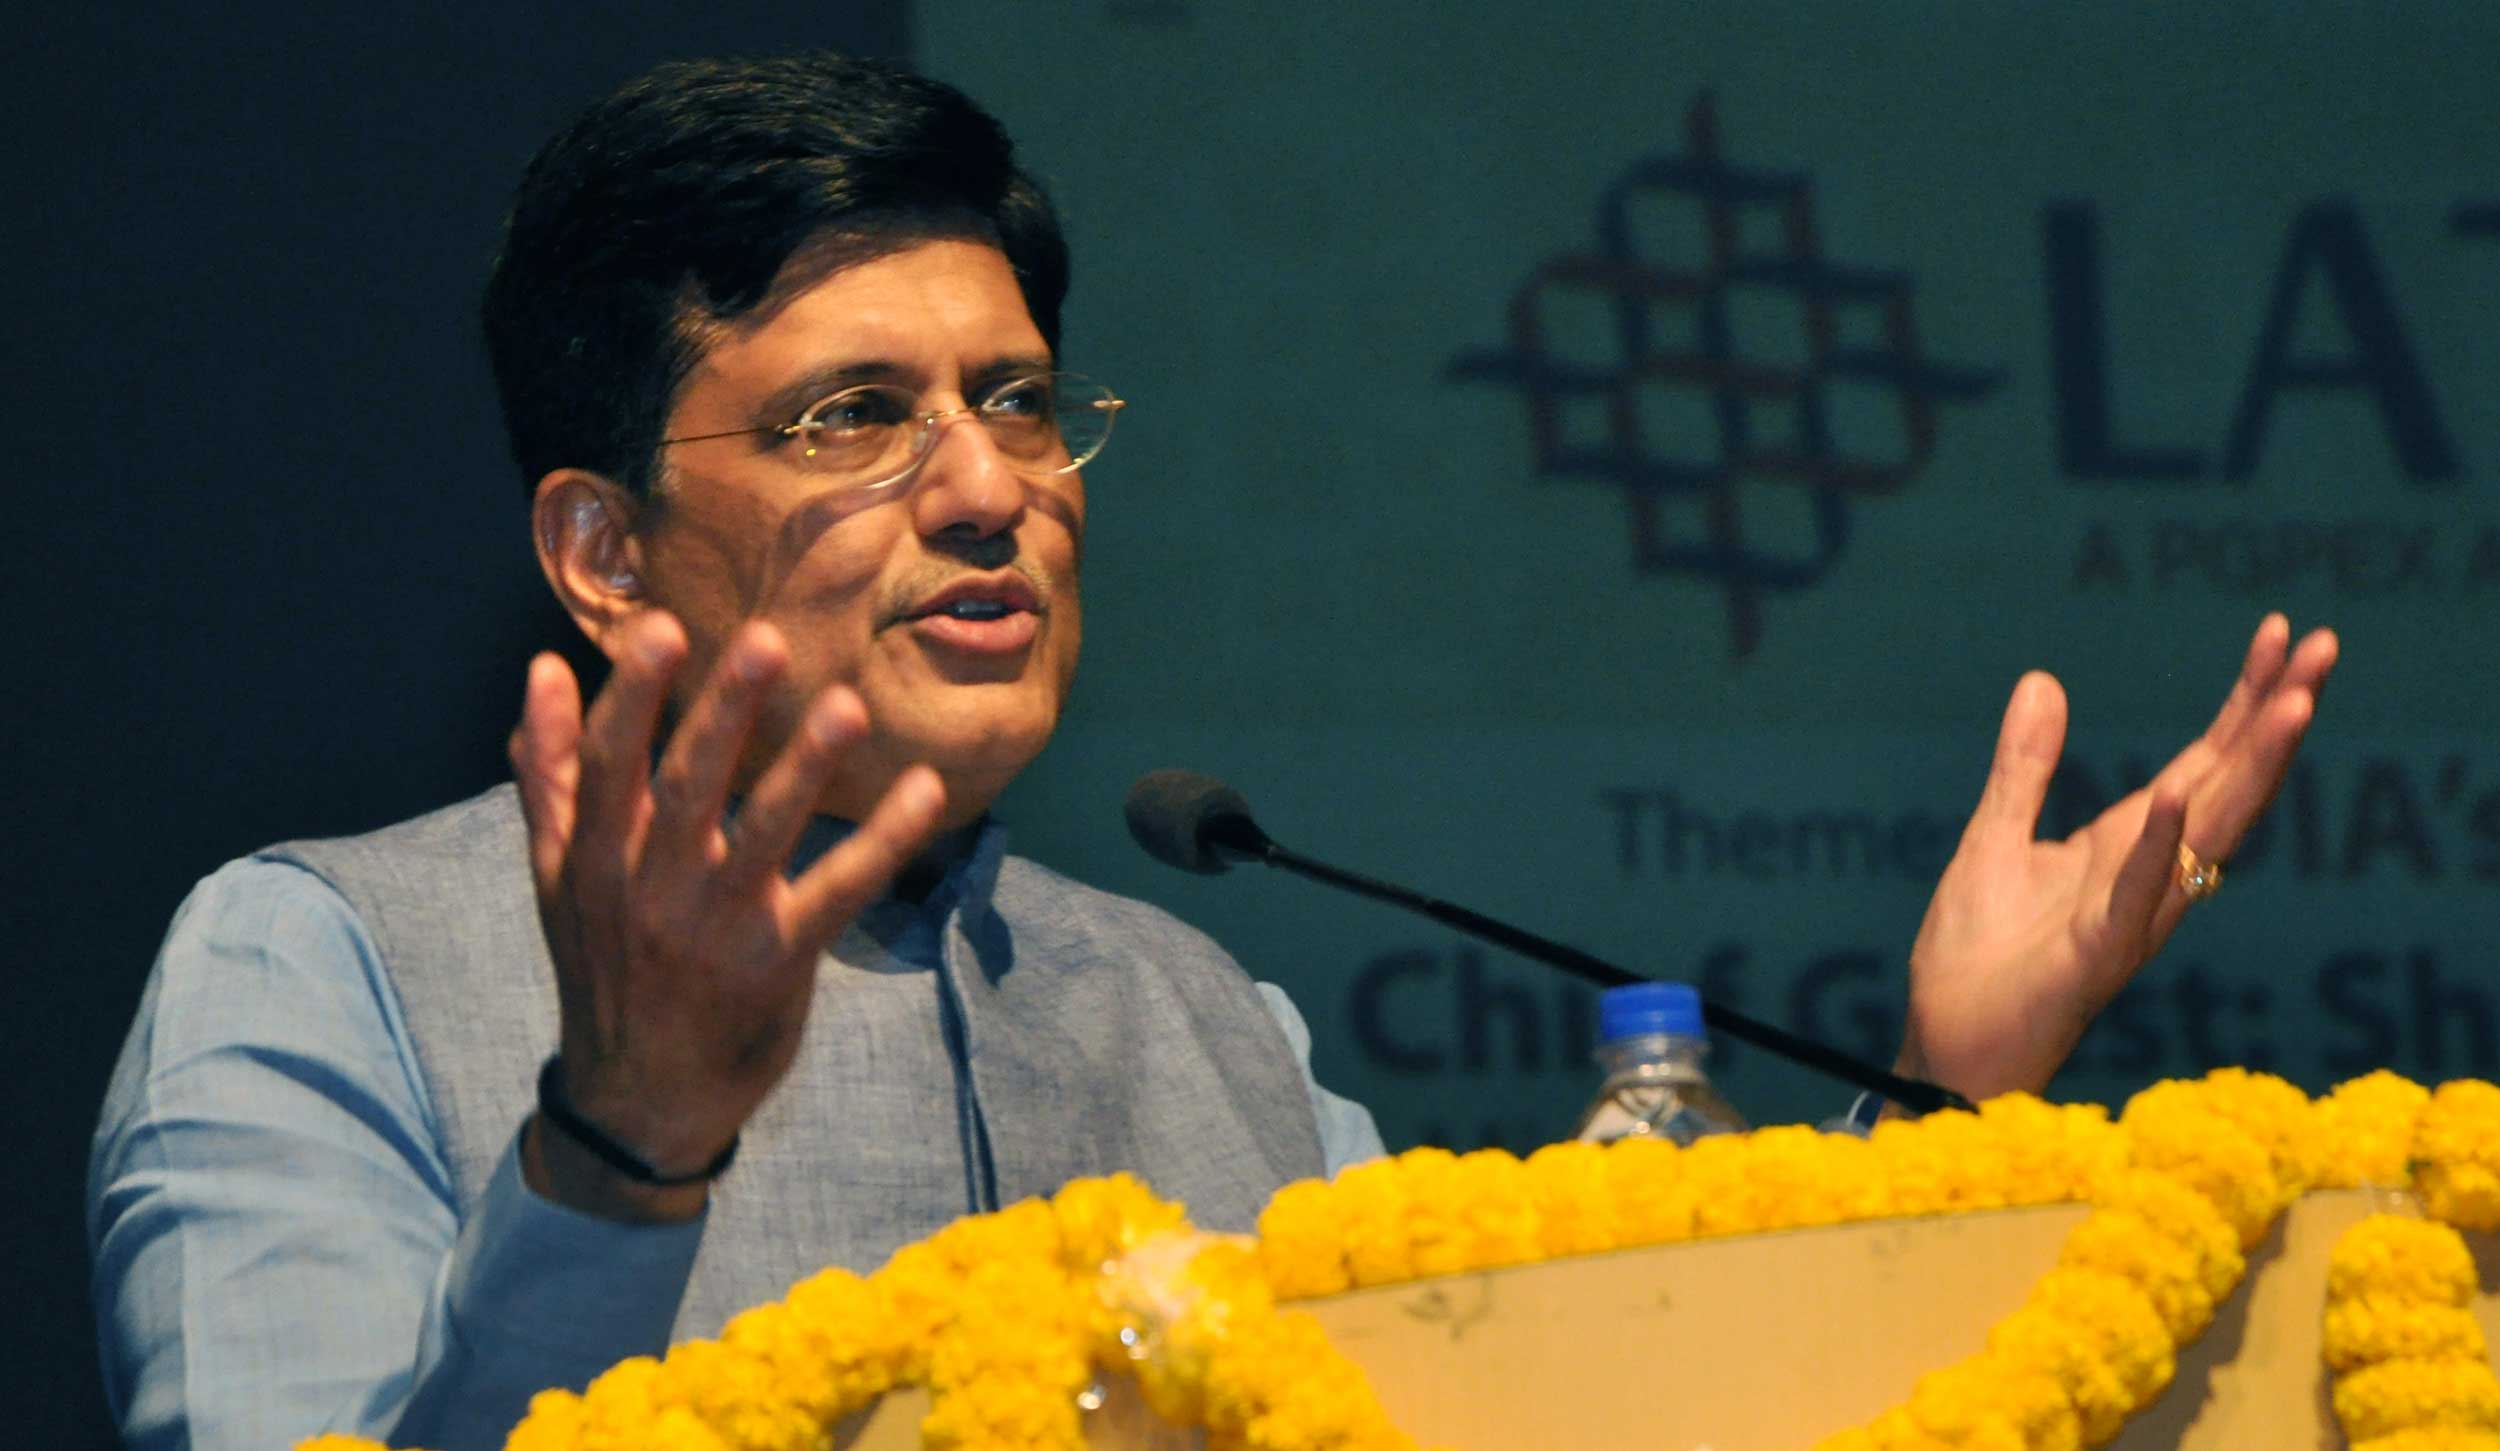 """""""We are concerned that it (export credit) has fallen, and will come up with the contours of a vibrant programme (to address the issue) soon, which will particularly support micro, small and medium enterprises,"""" Goyal said at a meeting of the Board of Trade."""